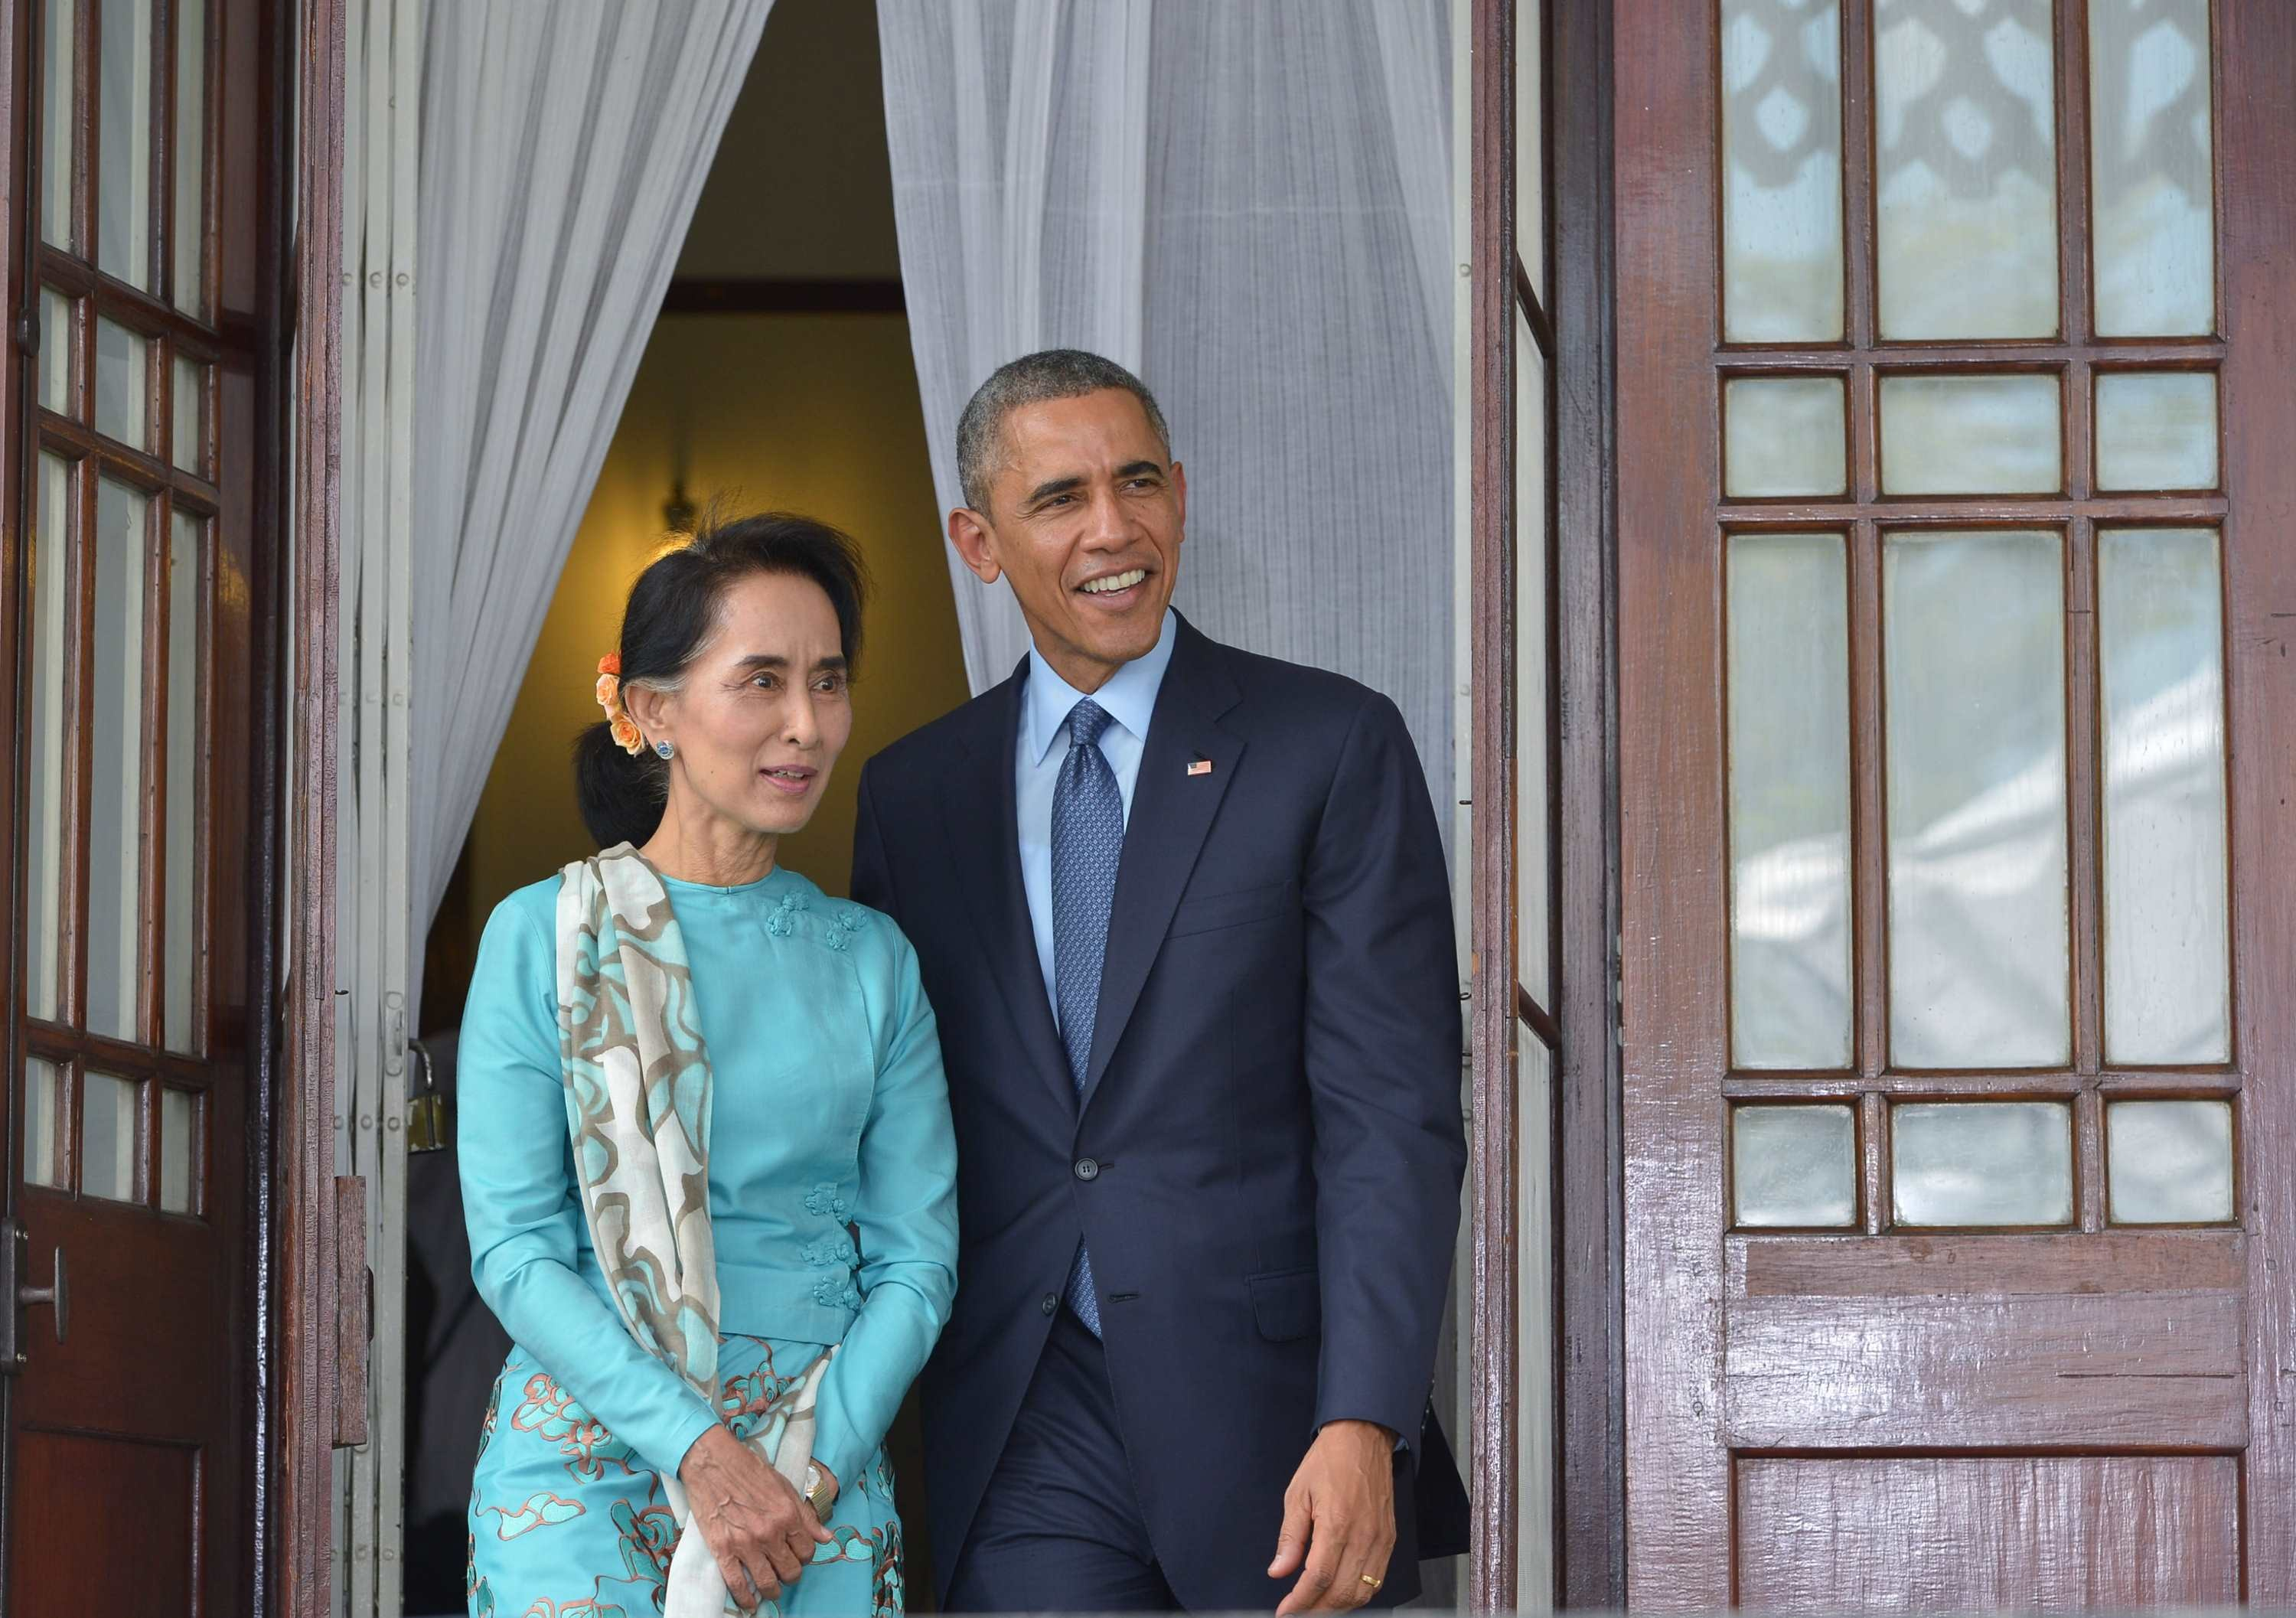 U.S. President Barack Obama and Aung San Suu Kyi arrive for a press conference at her residence in Rangoon on November 14, 2014